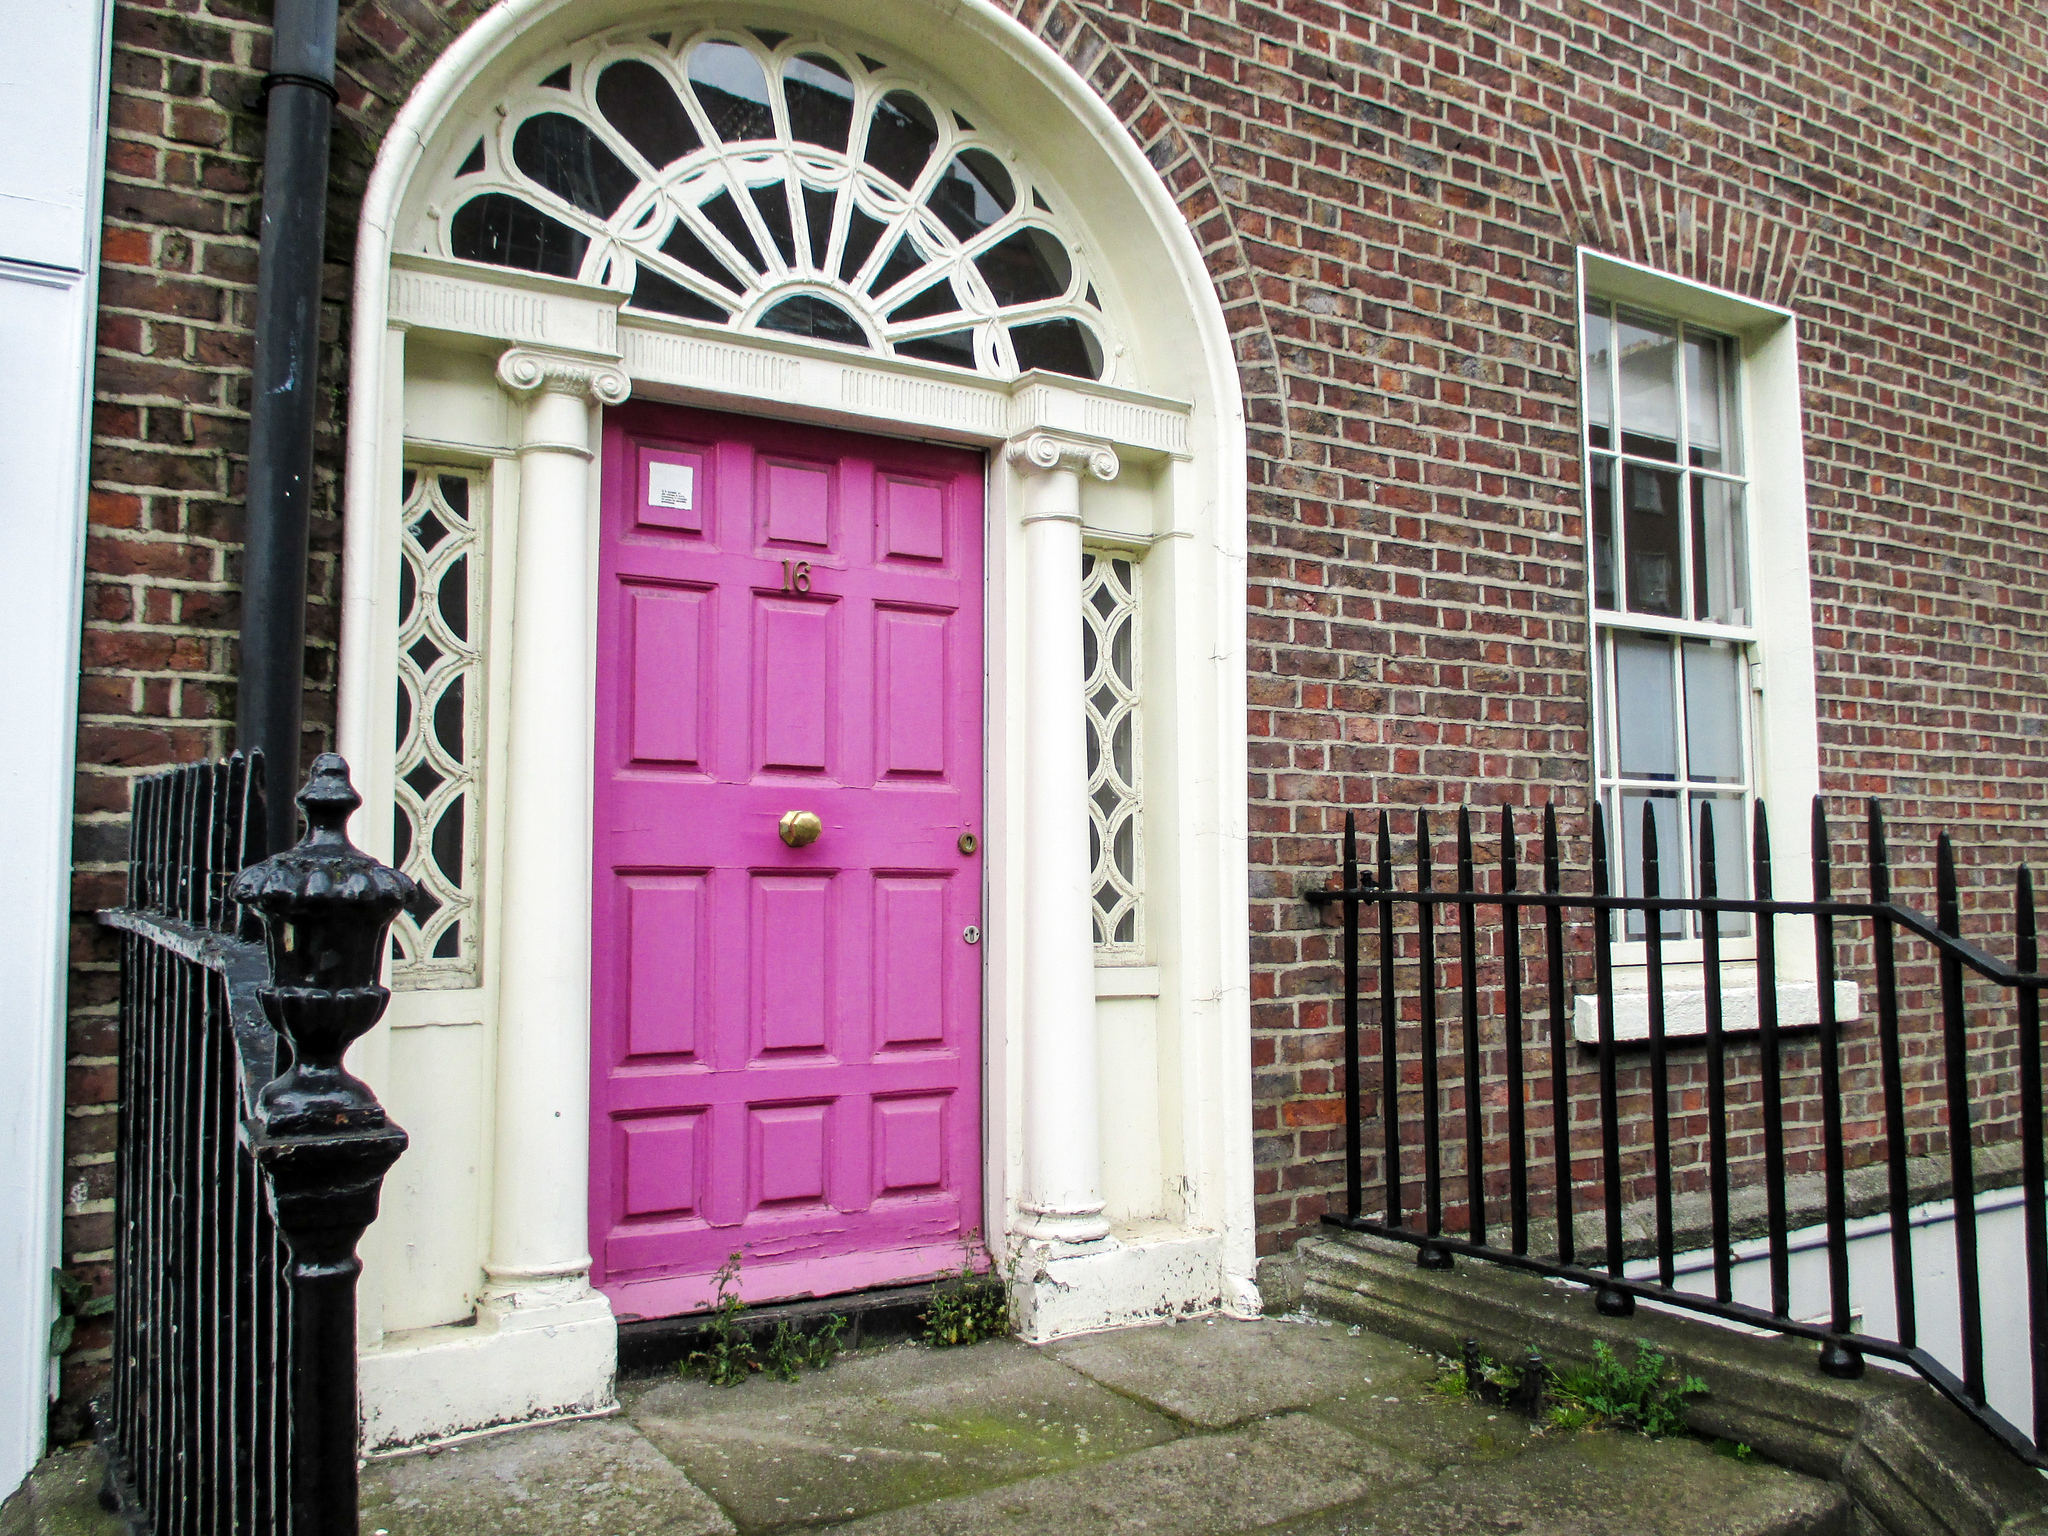 take a solo trip to ireland and see the colorful doors in dublin